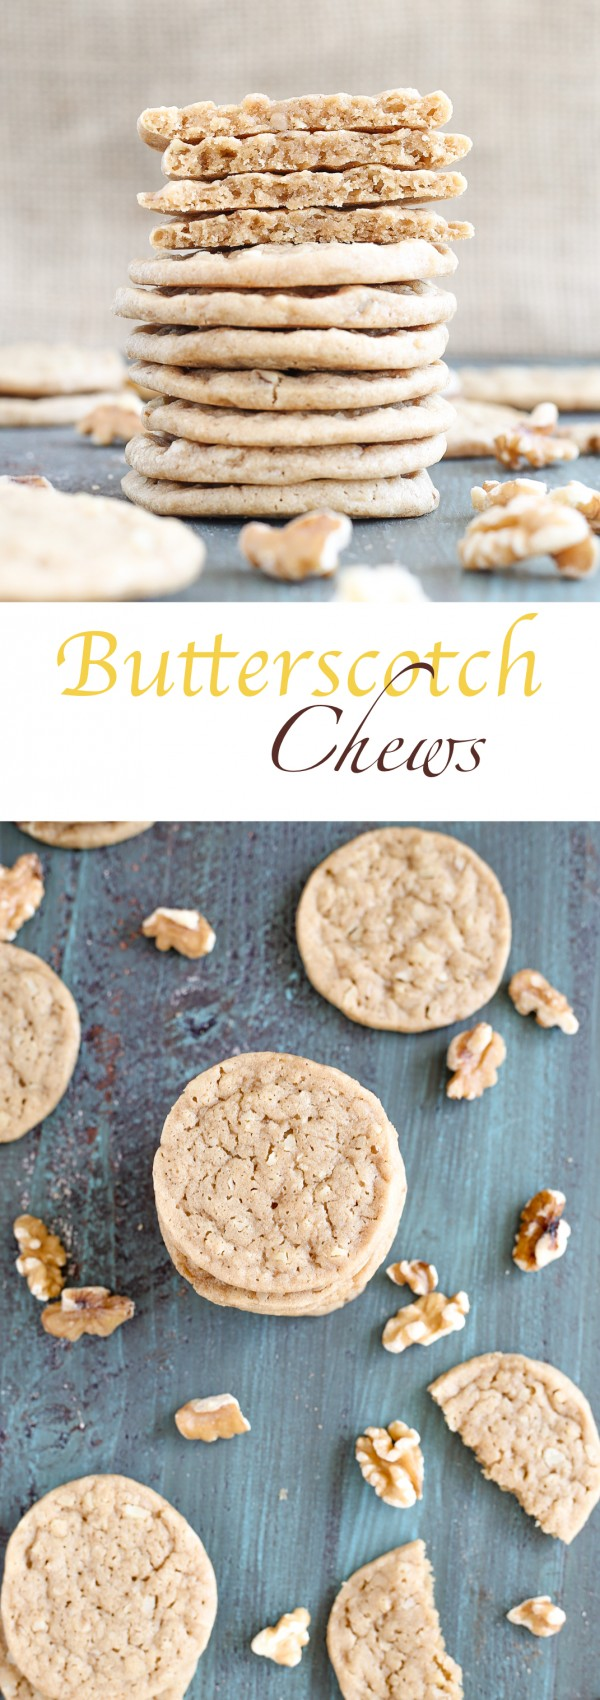 These easy Butterscotch chews combine the chew and brown sugar flavors of blondies with a little holiday ginger spice!   Chewy, nutty, addicting.